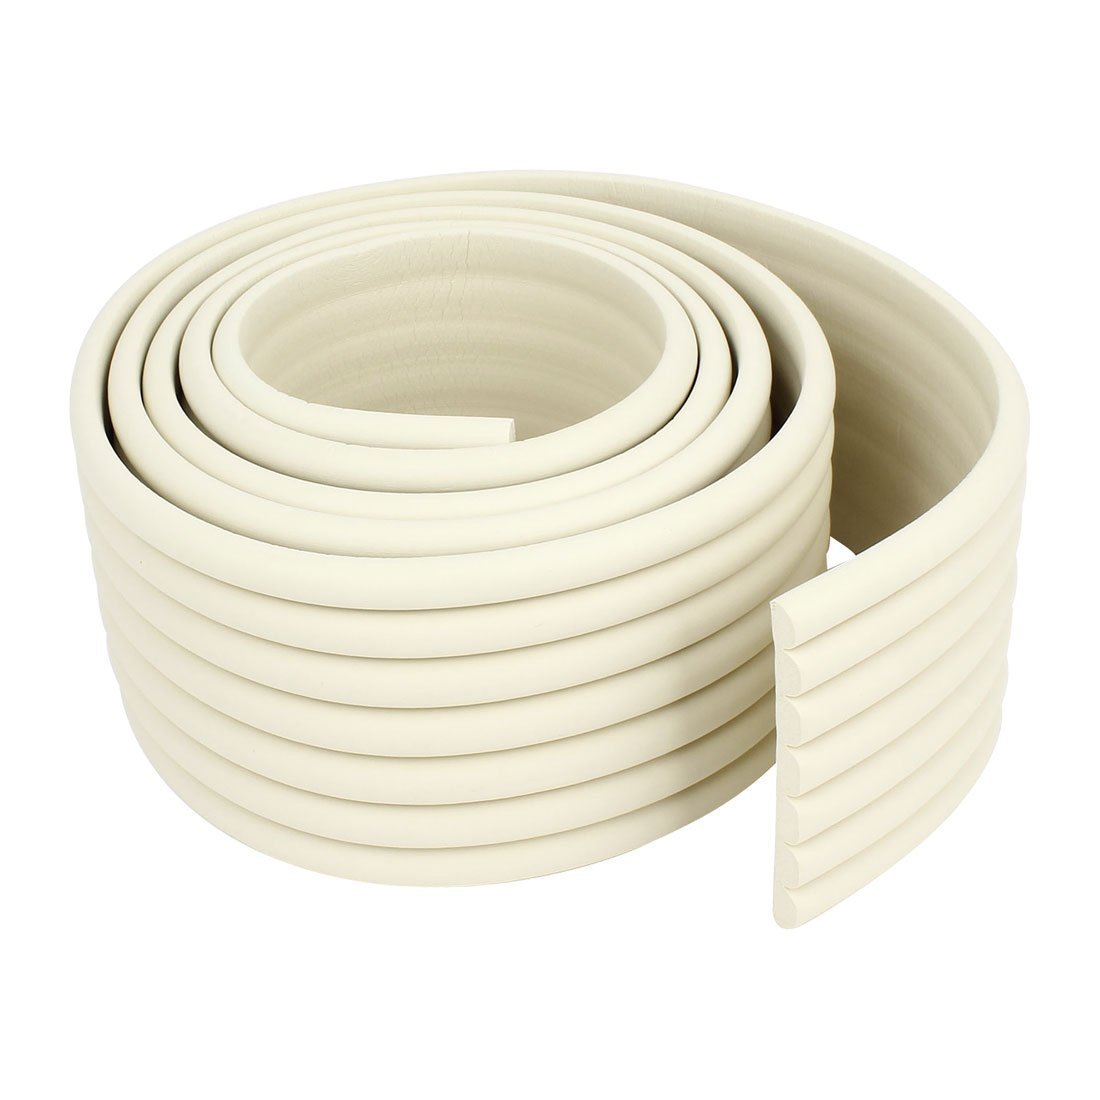 95cffc46699 TRIXES 2 Metre Roll of Safety Foam Furniture Corner Protector Beige  Amazon. co.uk  Kitchen   Home